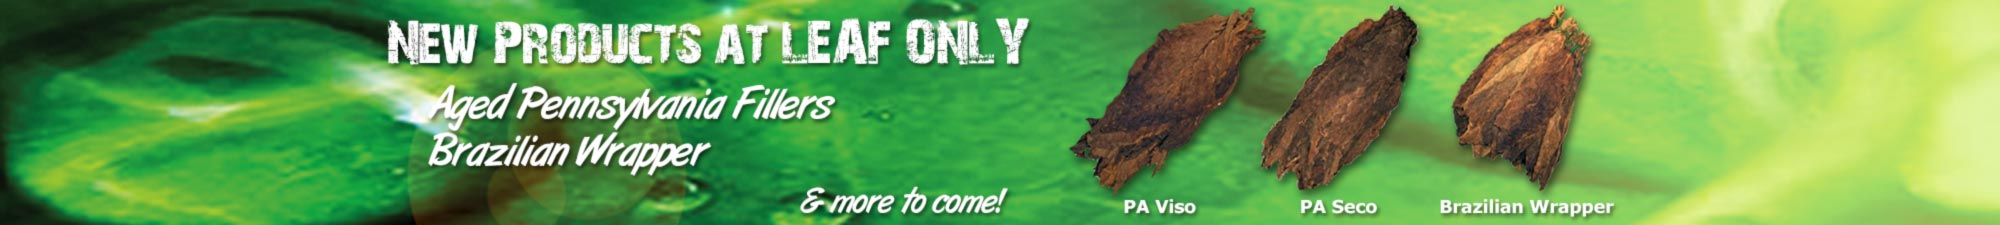 New Tobacco Leaf Products at Leaf Only - Brazilian Wrappers, PA Cigar Leaves, and More!